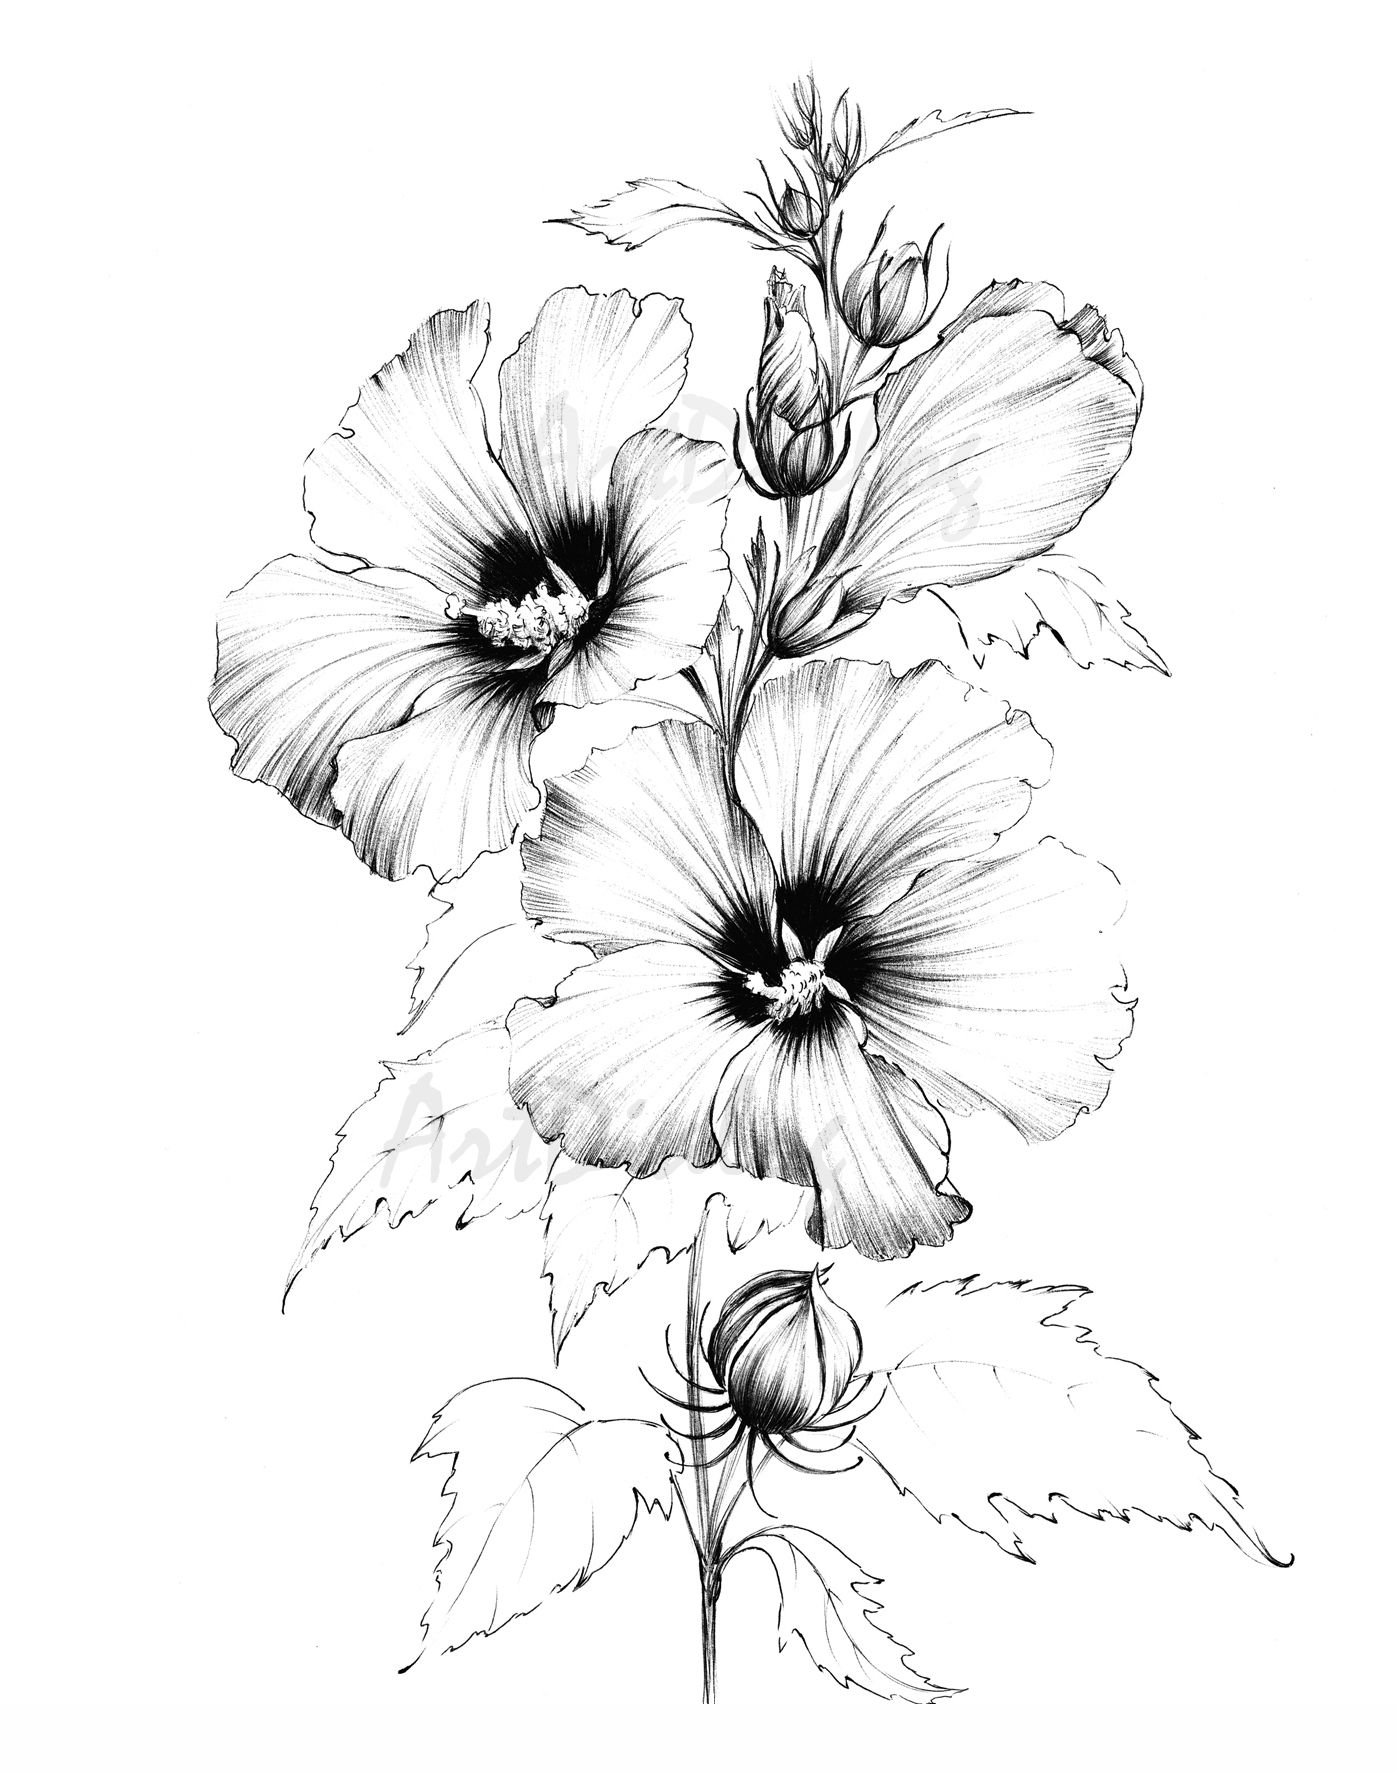 Hibiscus Sketch Line Drawing Coloring Page Clipart Large Botanical Art A1 Print A4 Black White Official Flower Hawaii Tea Flower Pencil Drawings Of Flowers Flower Line Drawings Flower Drawing